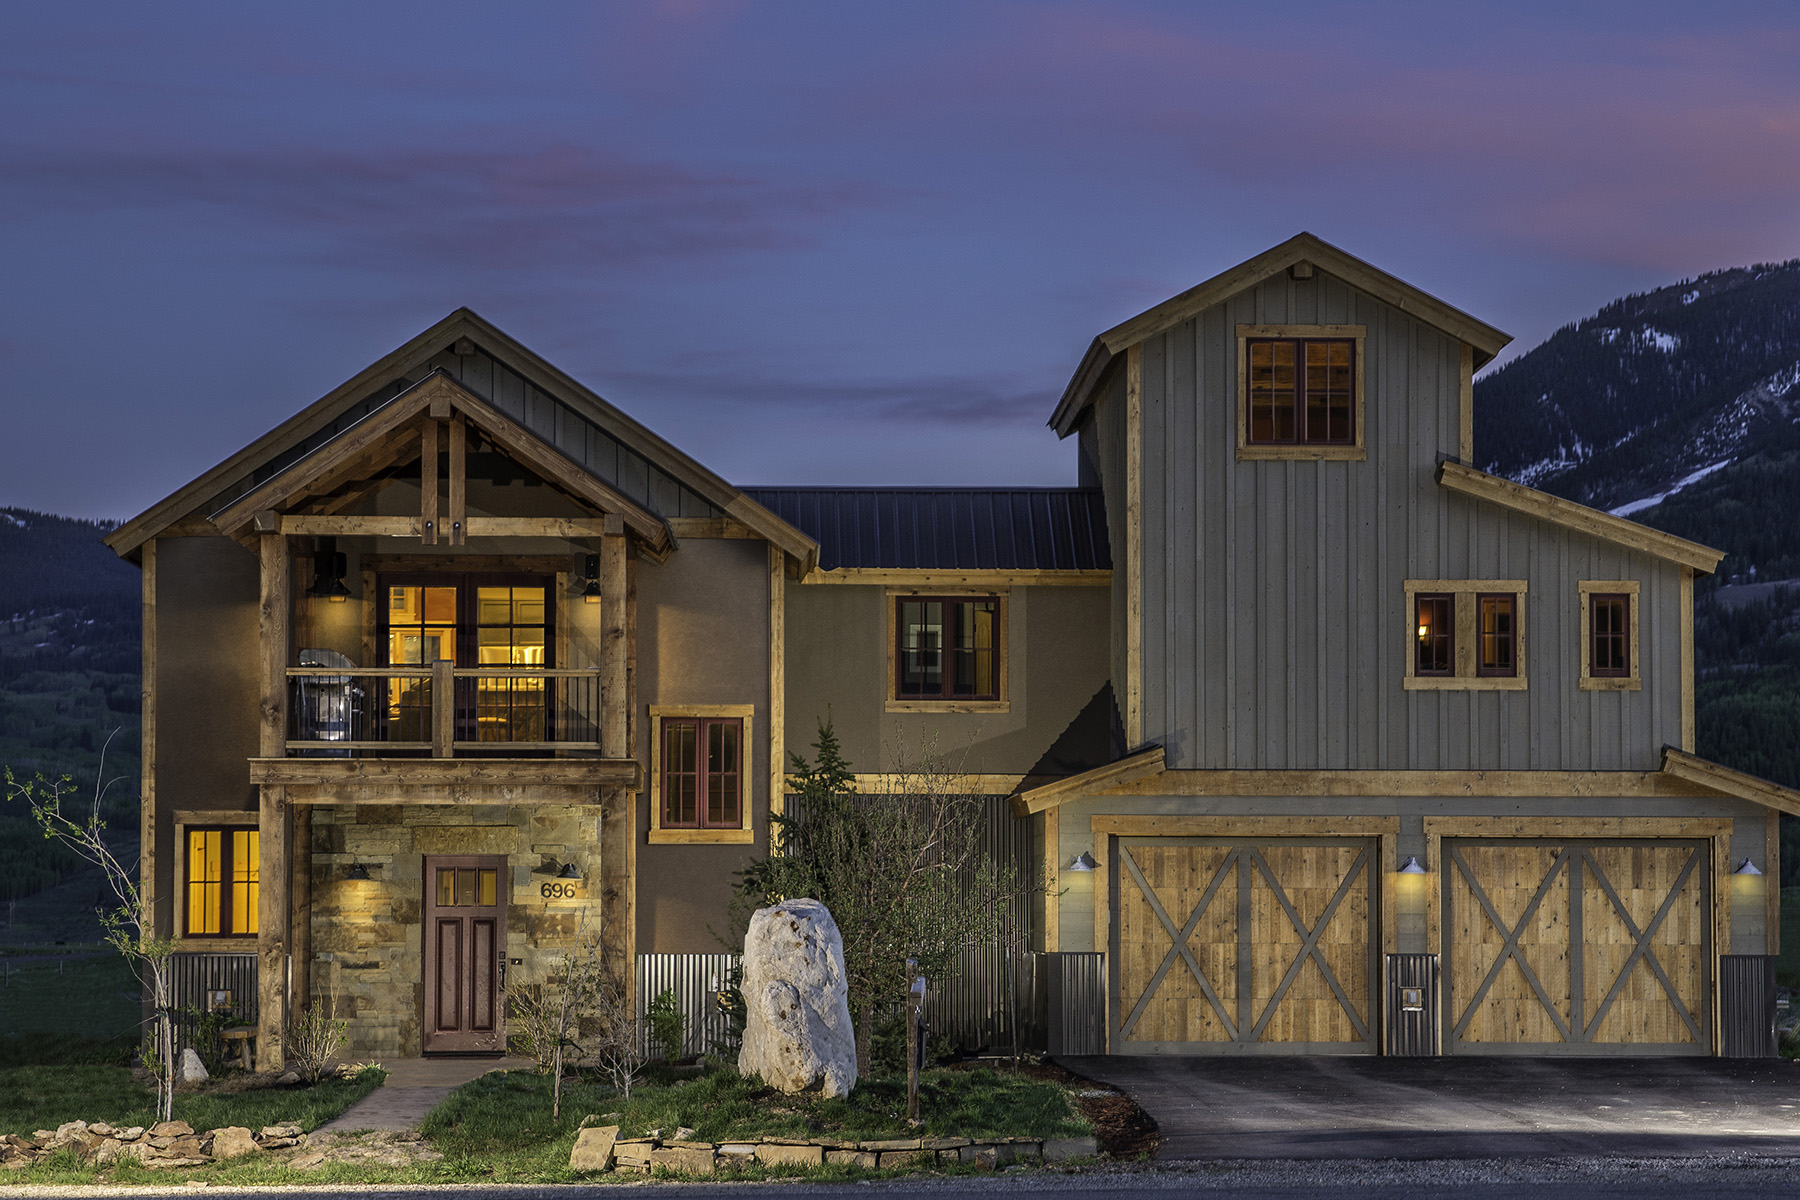 Single Family Home for Sale at Rustic and Modern Design 696 S. Avion Drive Crested Butte, Colorado, 81224 United States